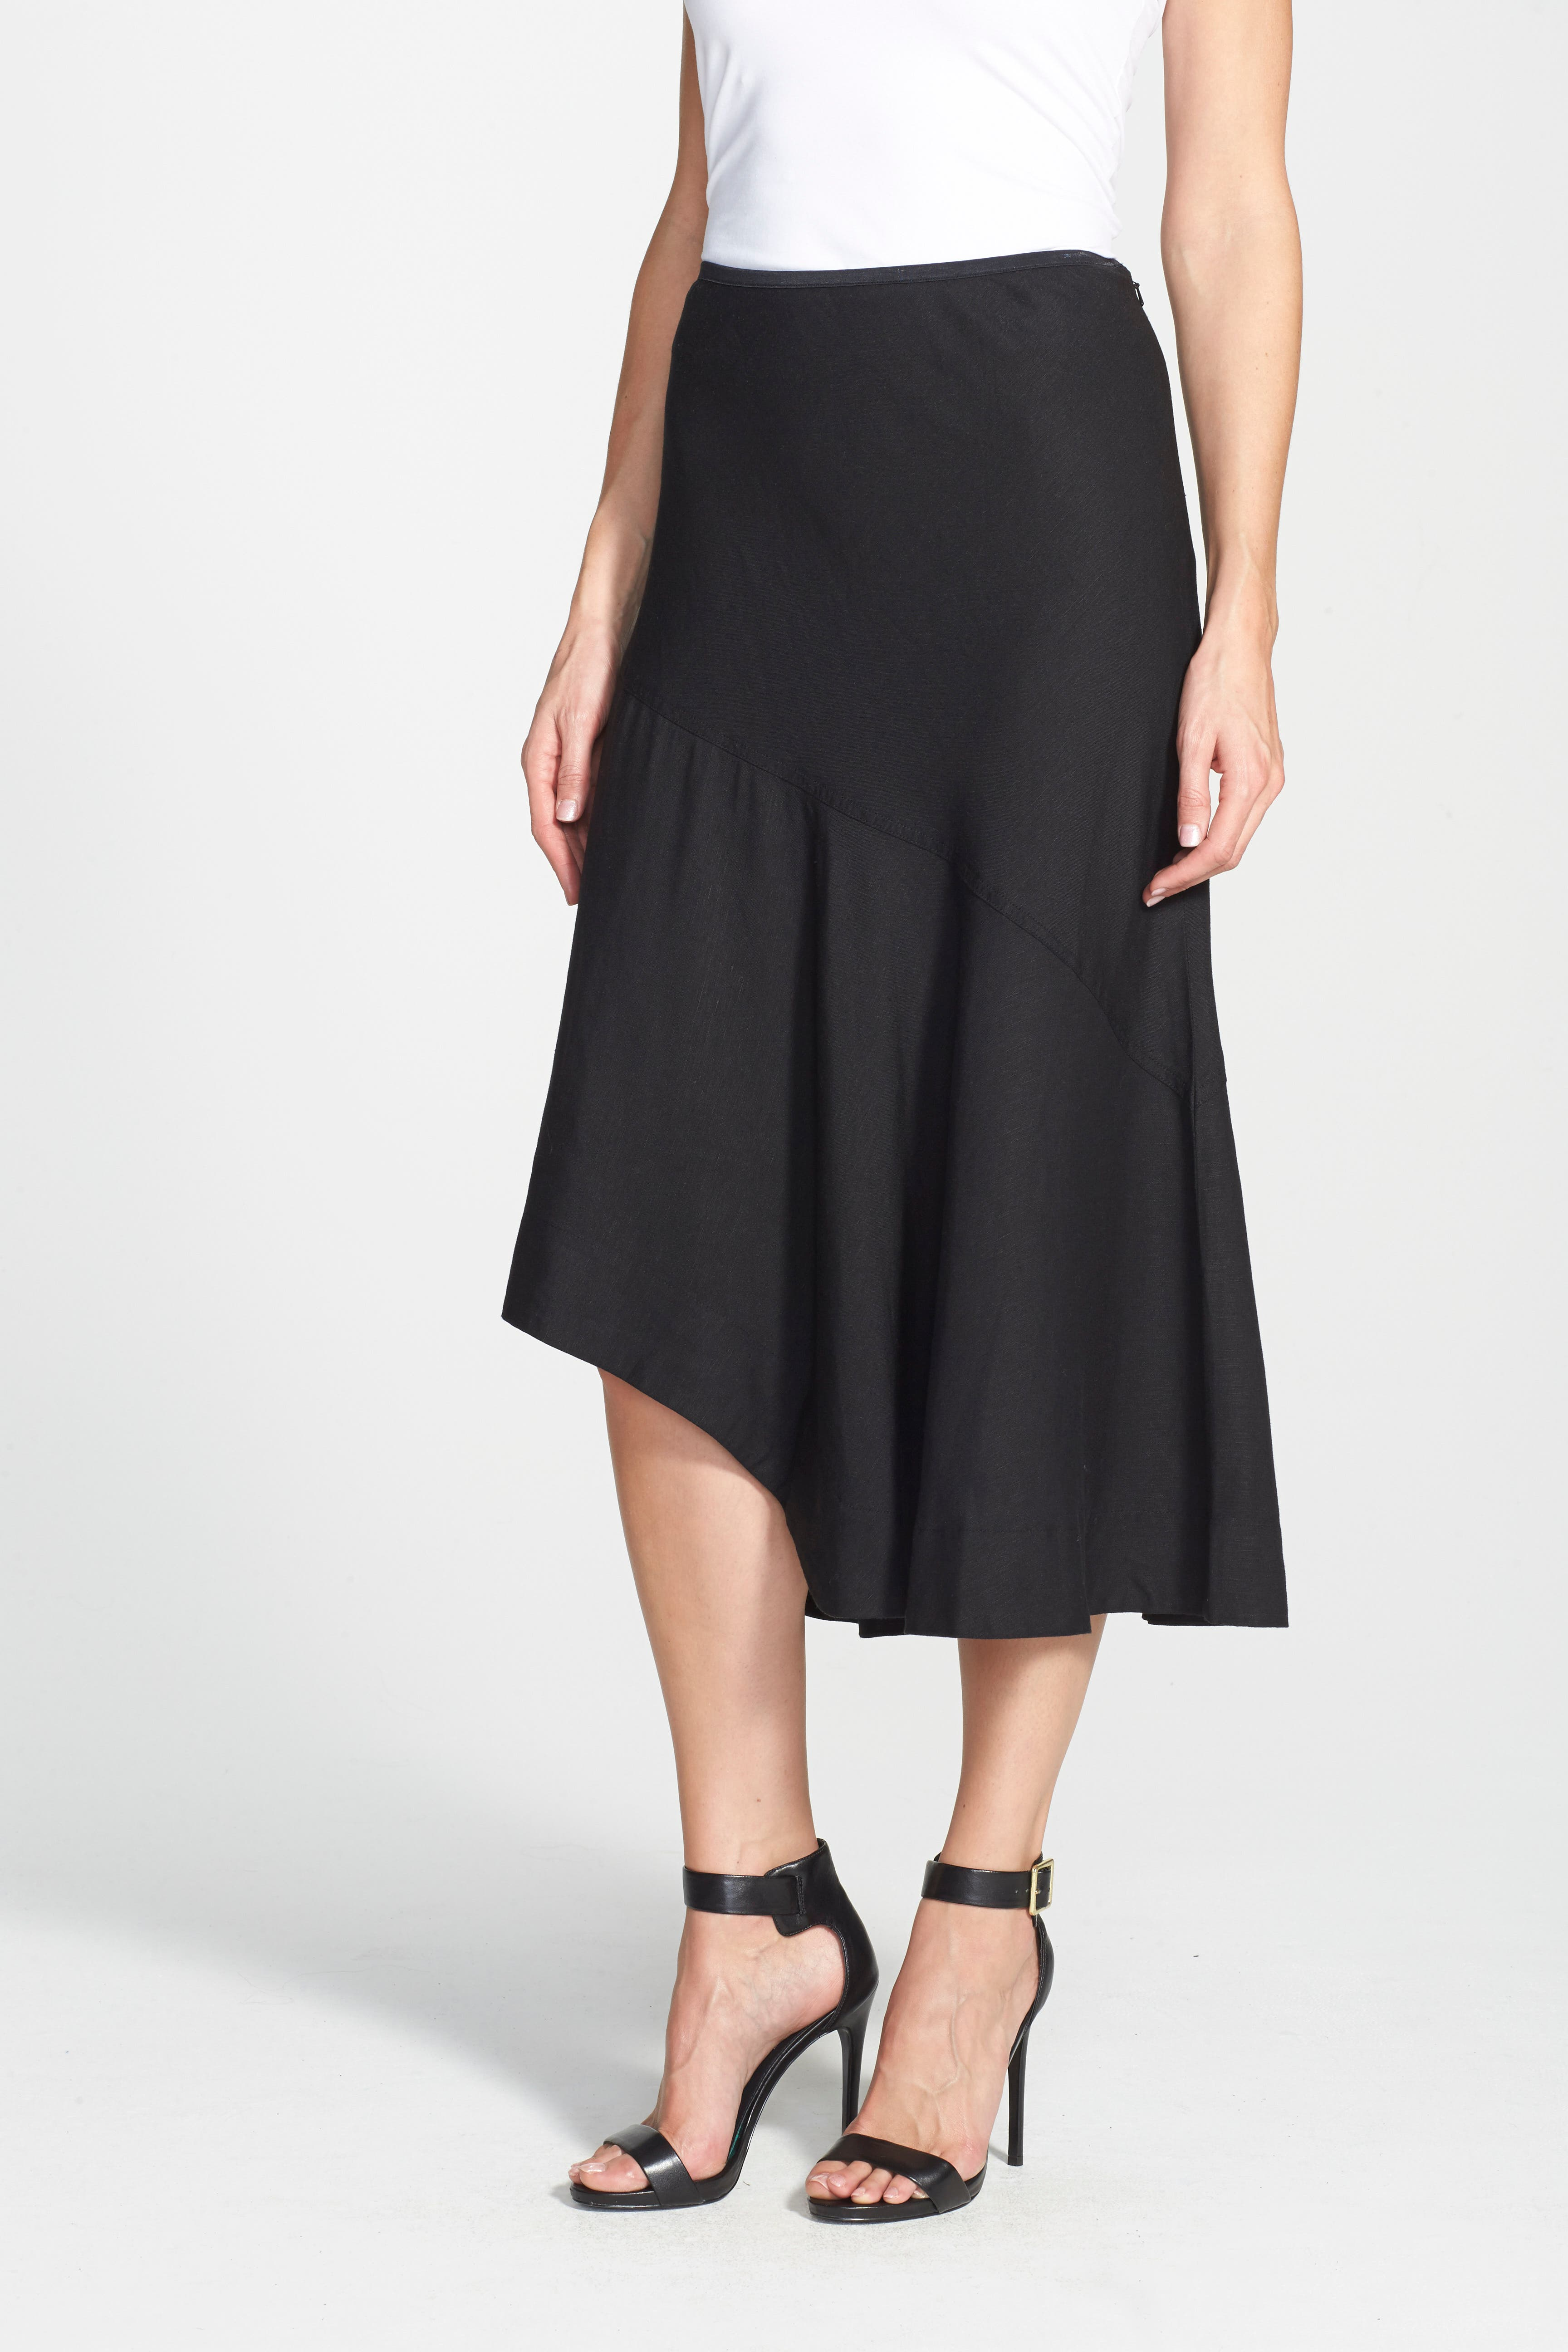 NIC+ZOE, 'The Long Engagement' Midi Skirt, Alternate thumbnail 3, color, 004